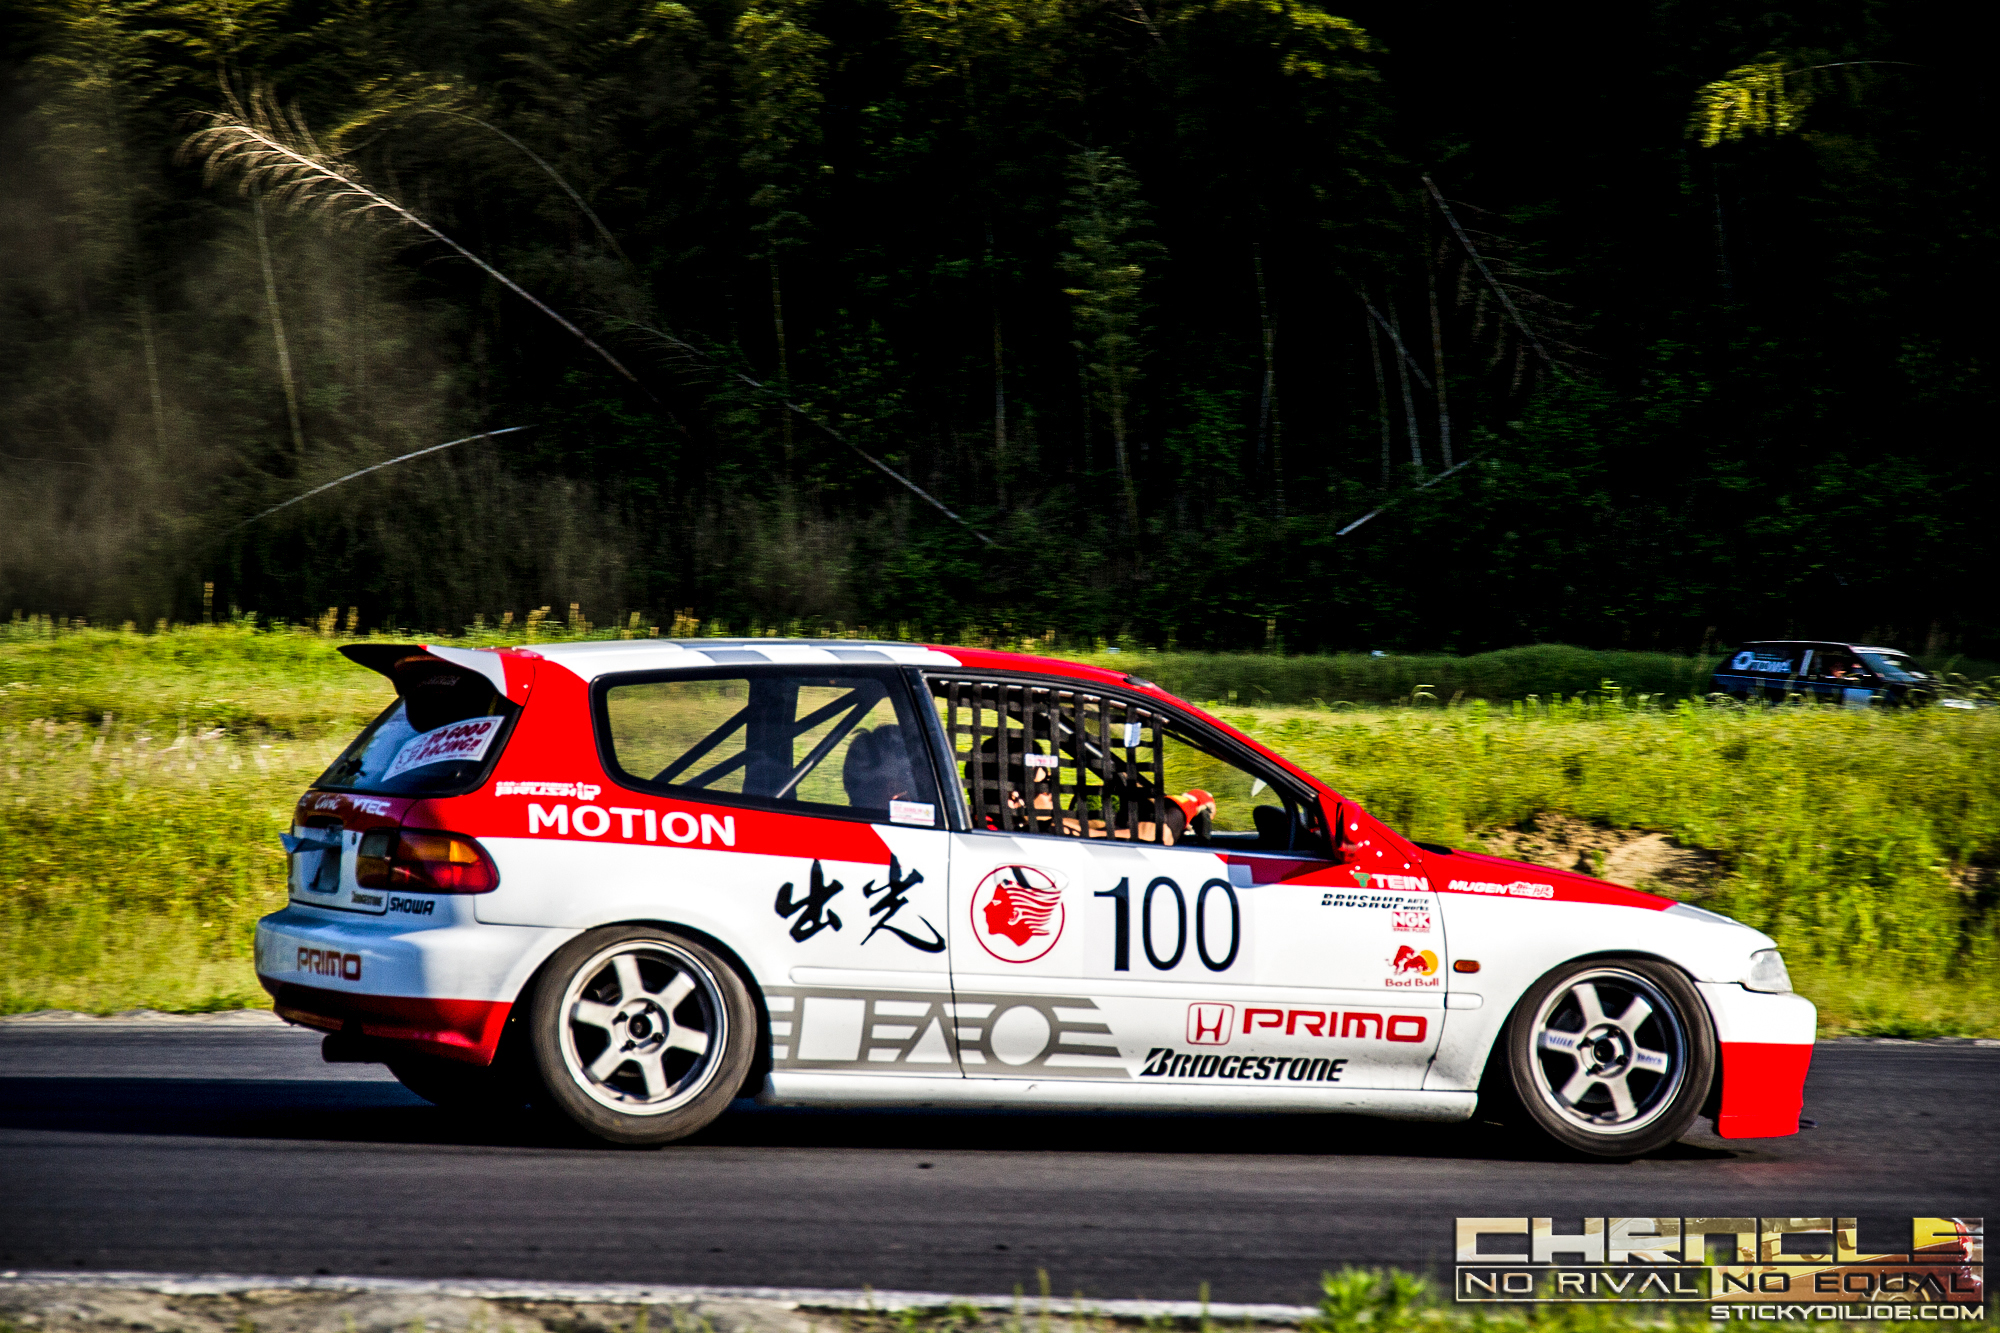 This EG6 Civic bears a scheme that is nearly identical to the Idemitsu Motion Group-A Civic race cars from the 80s.